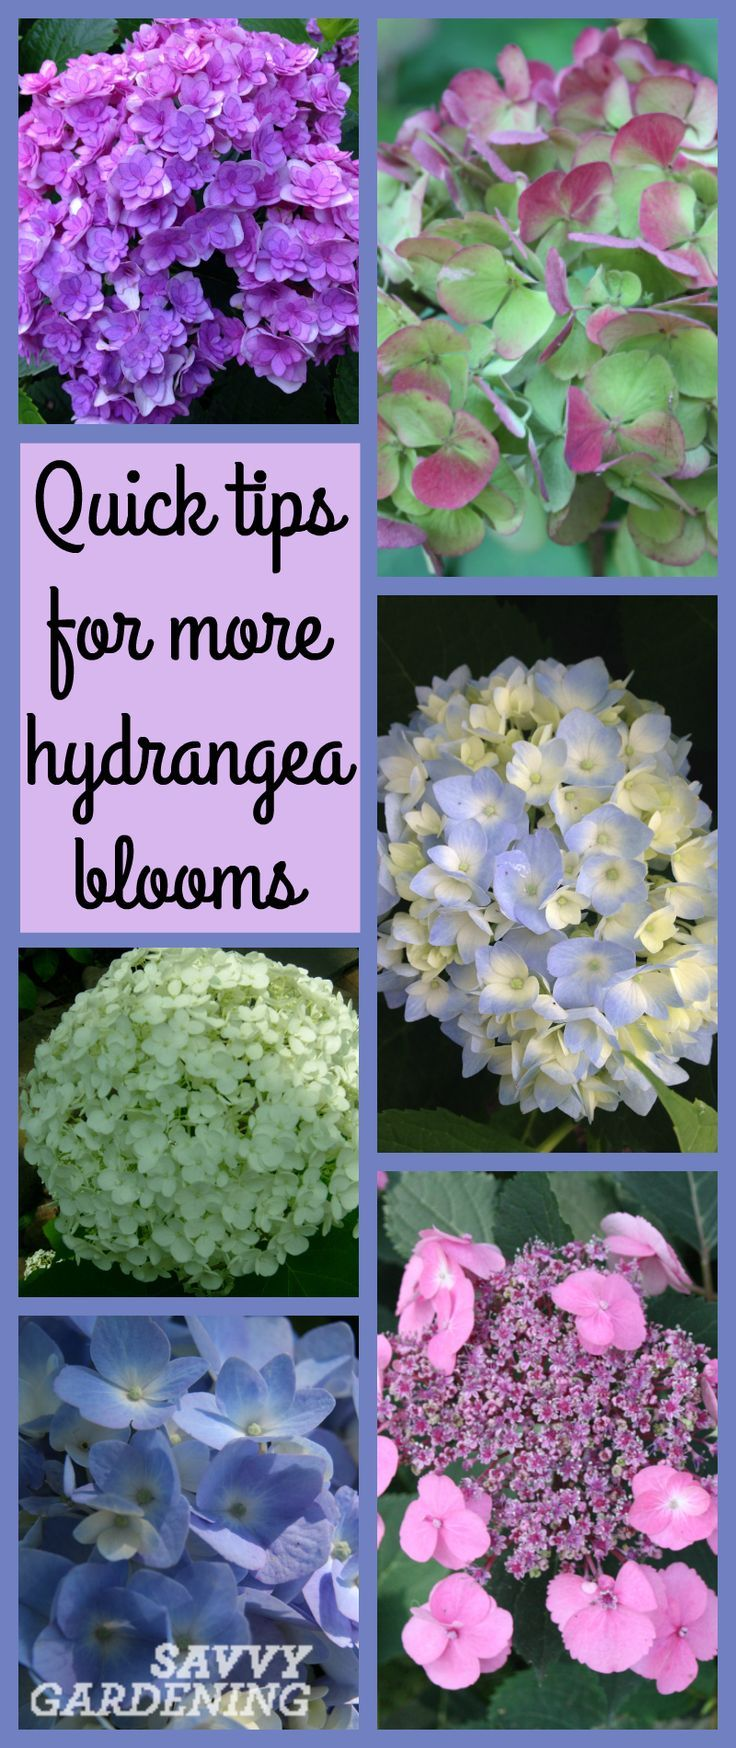 How to plant a flower garden - How To Protect Your Hydrangea For The Winter Flower Gardeninggarden